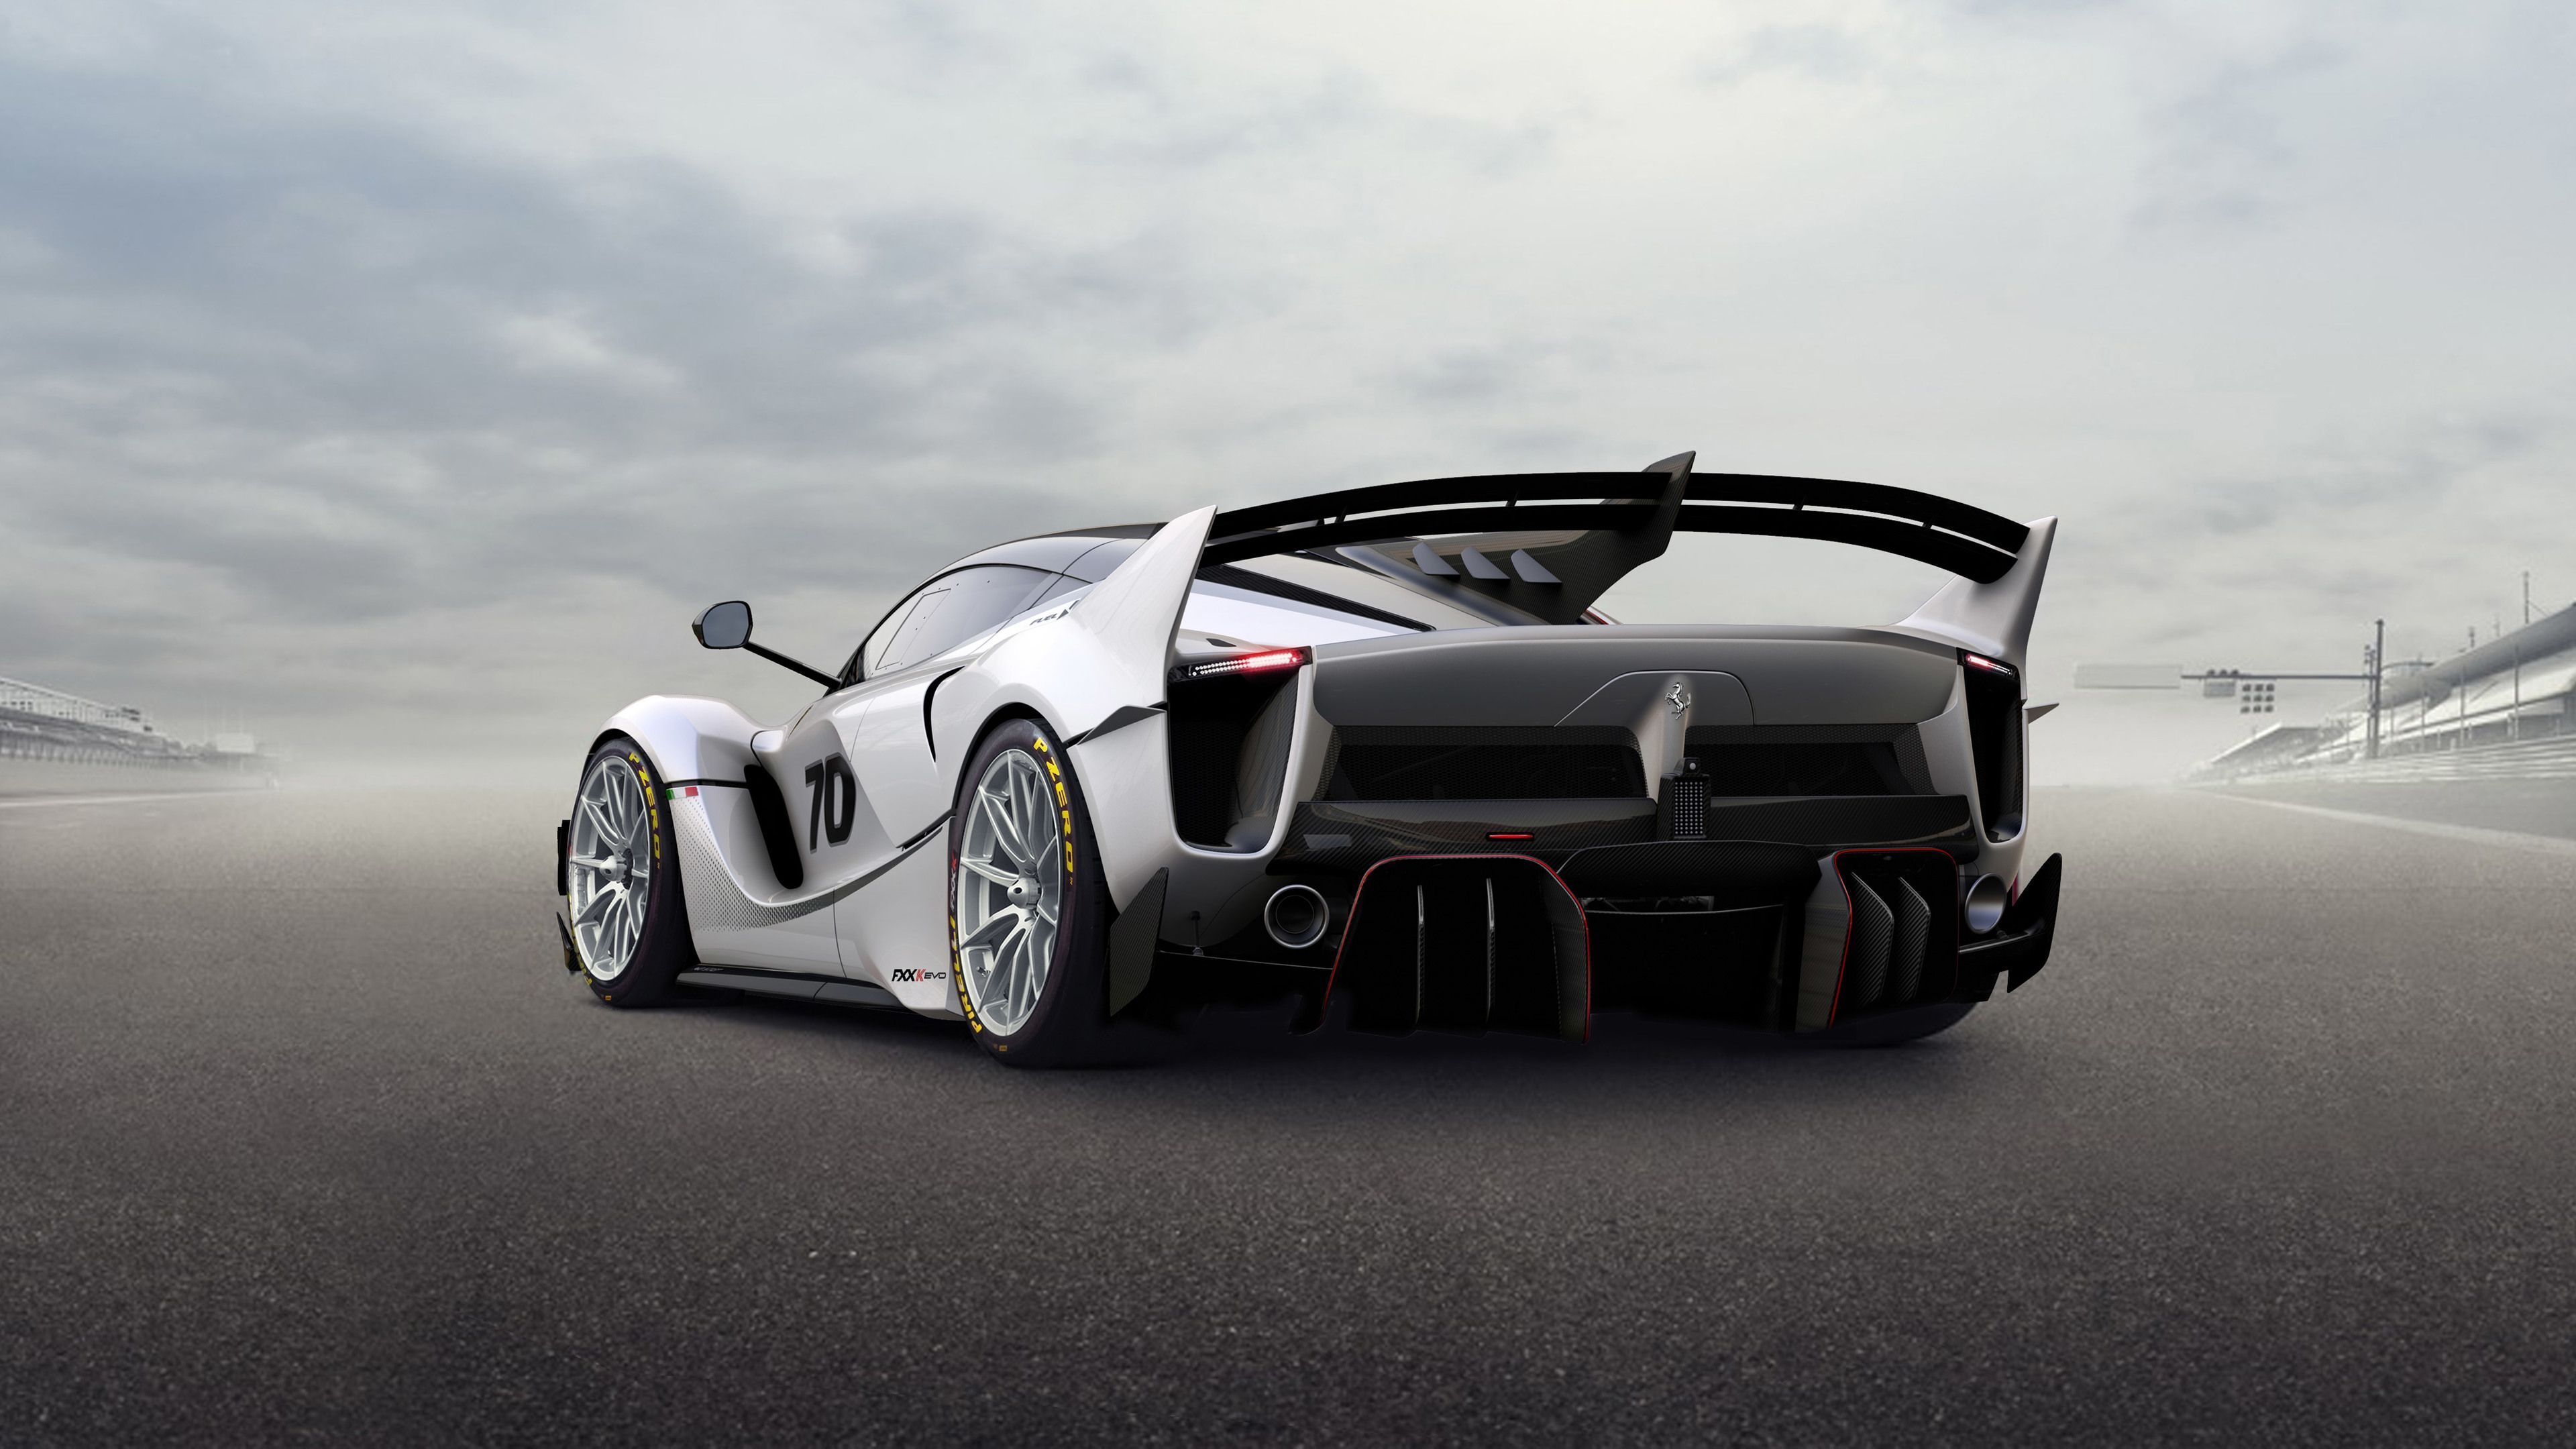 Ferrari FXX K Evo 2018 hd-wallpapers, ferrari wallpapers, ferrari fxx k wallpape…